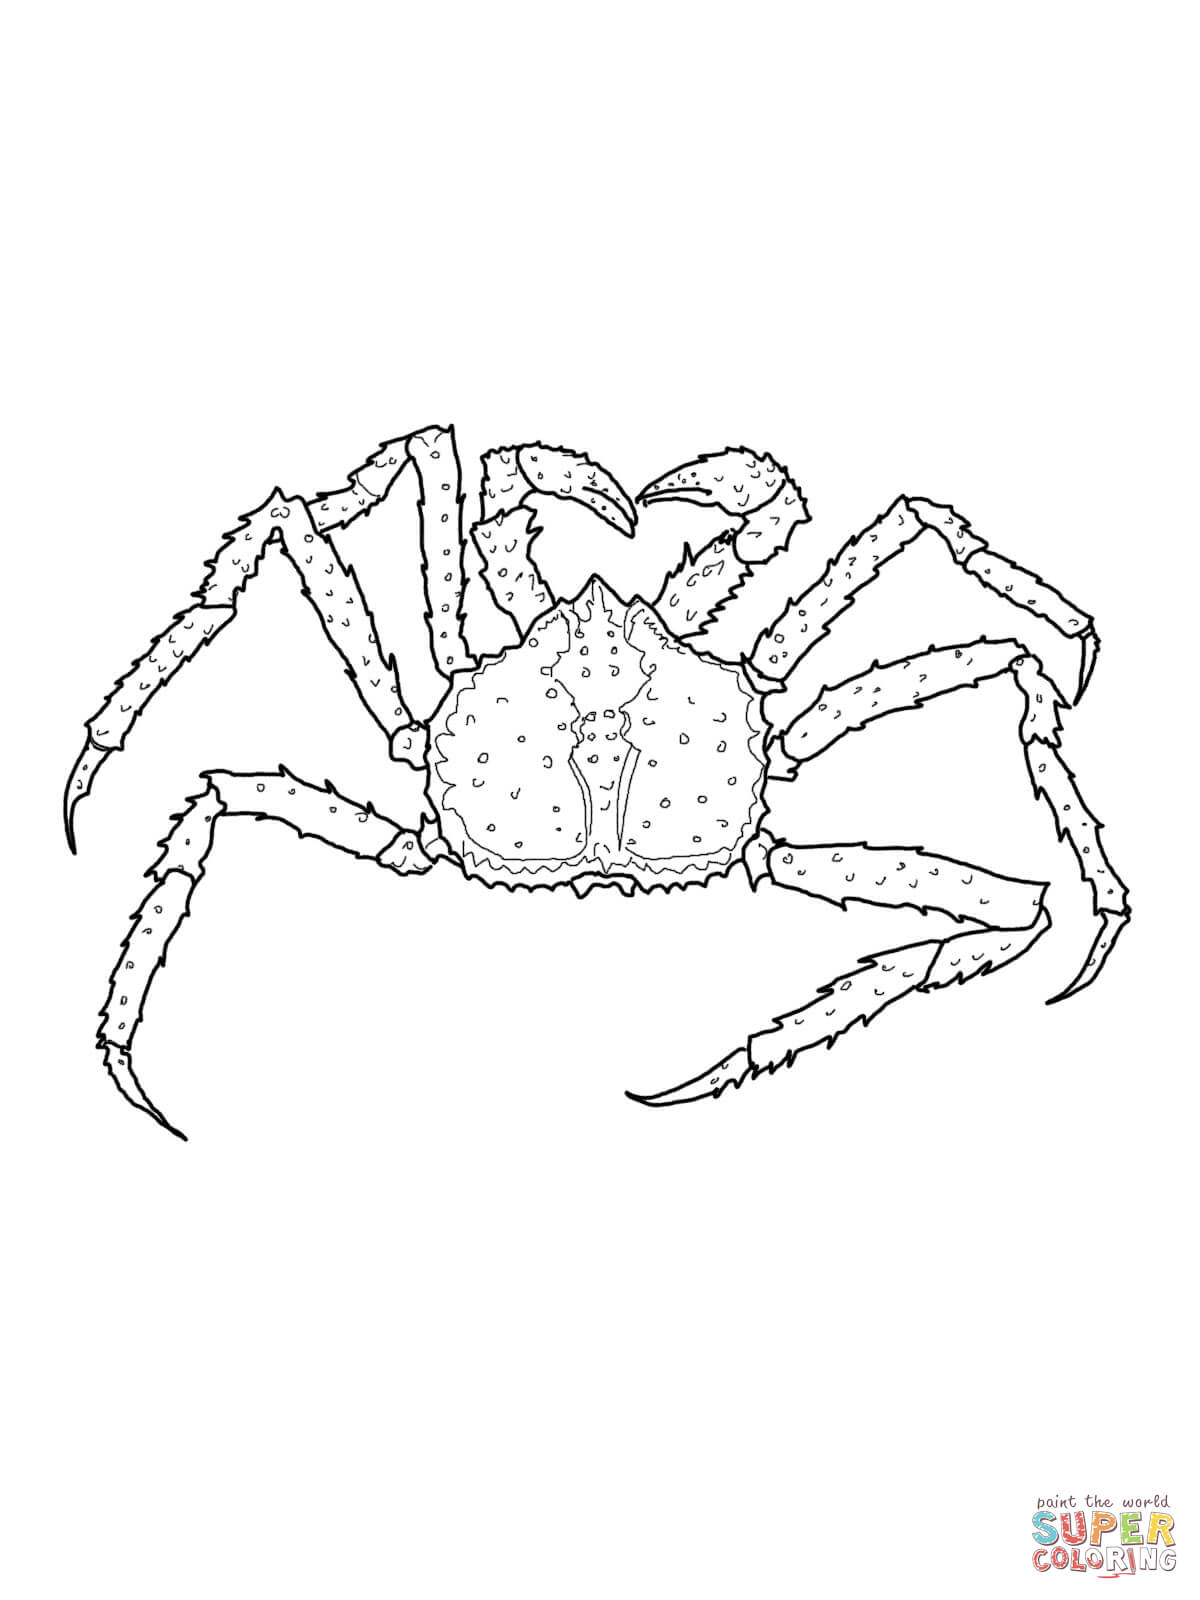 king crab coloring page free printable coloring pages